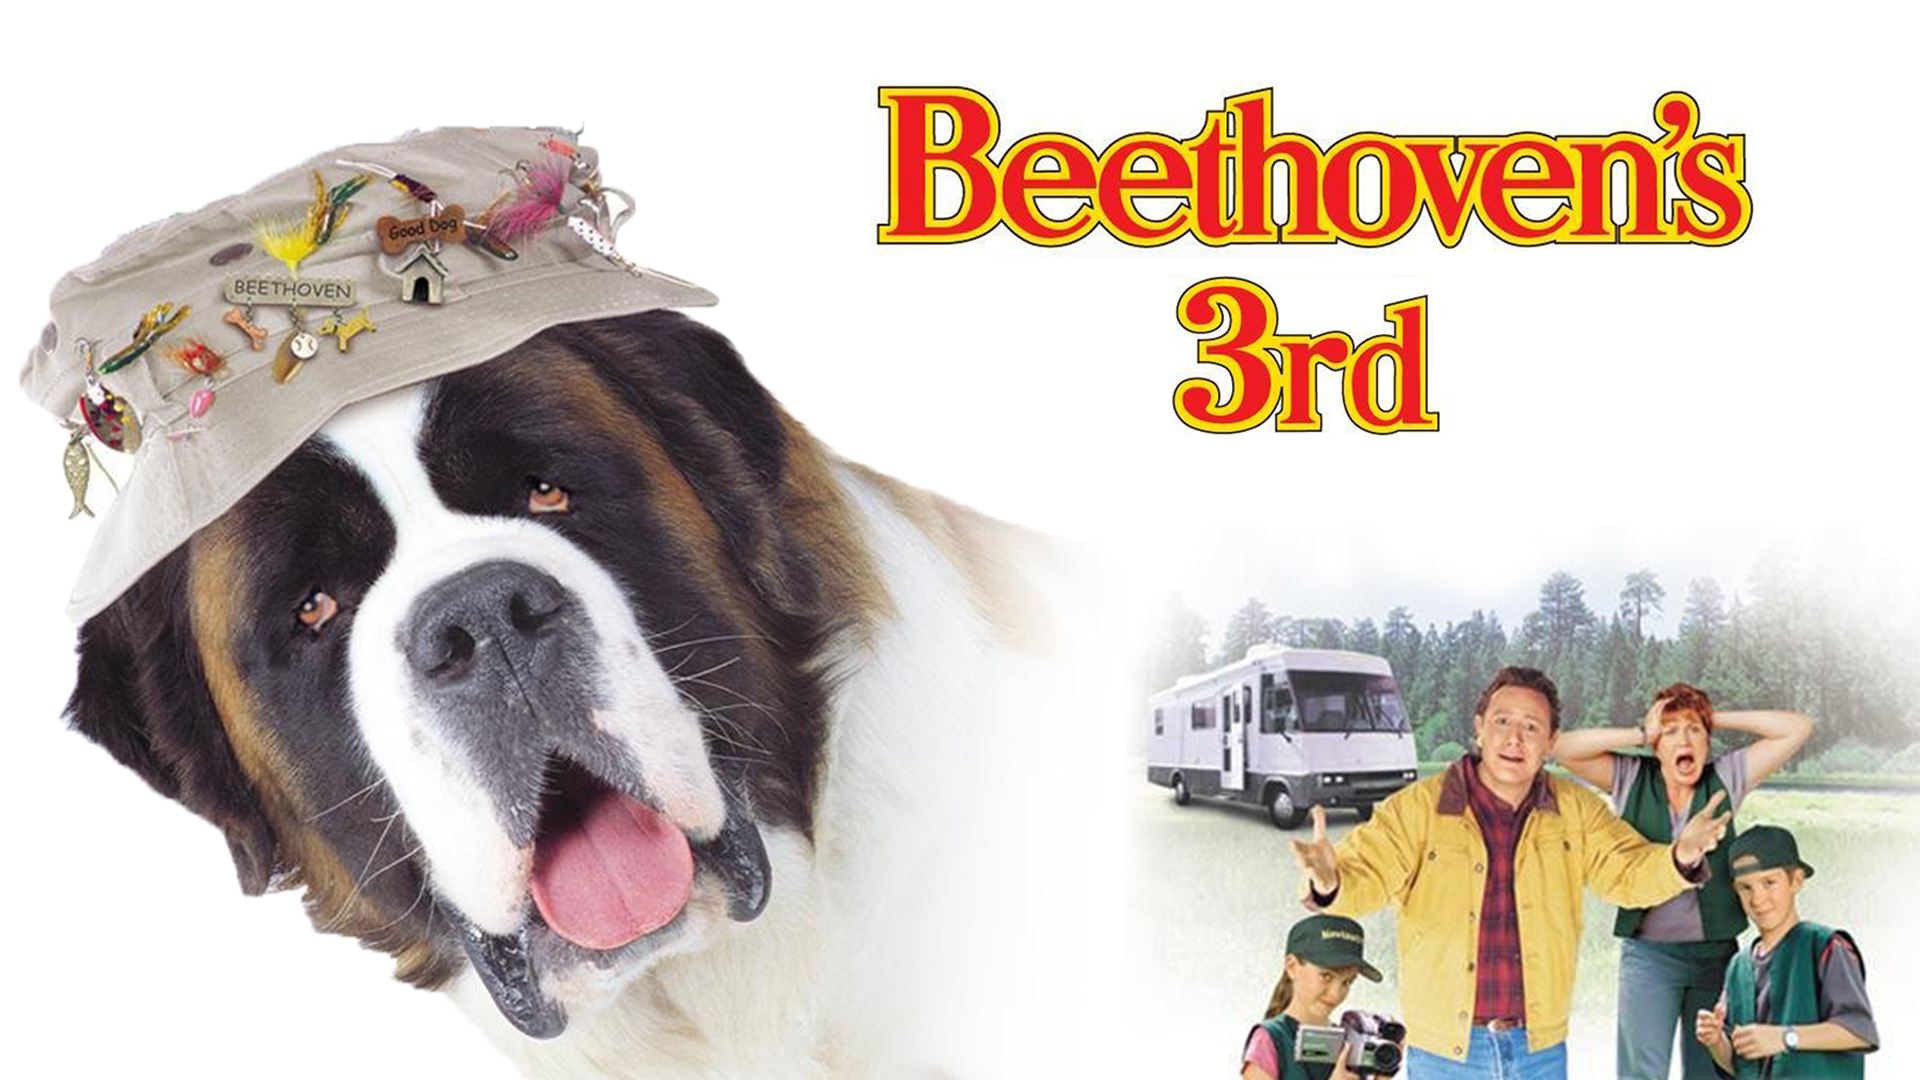 Beethoven's 3rd